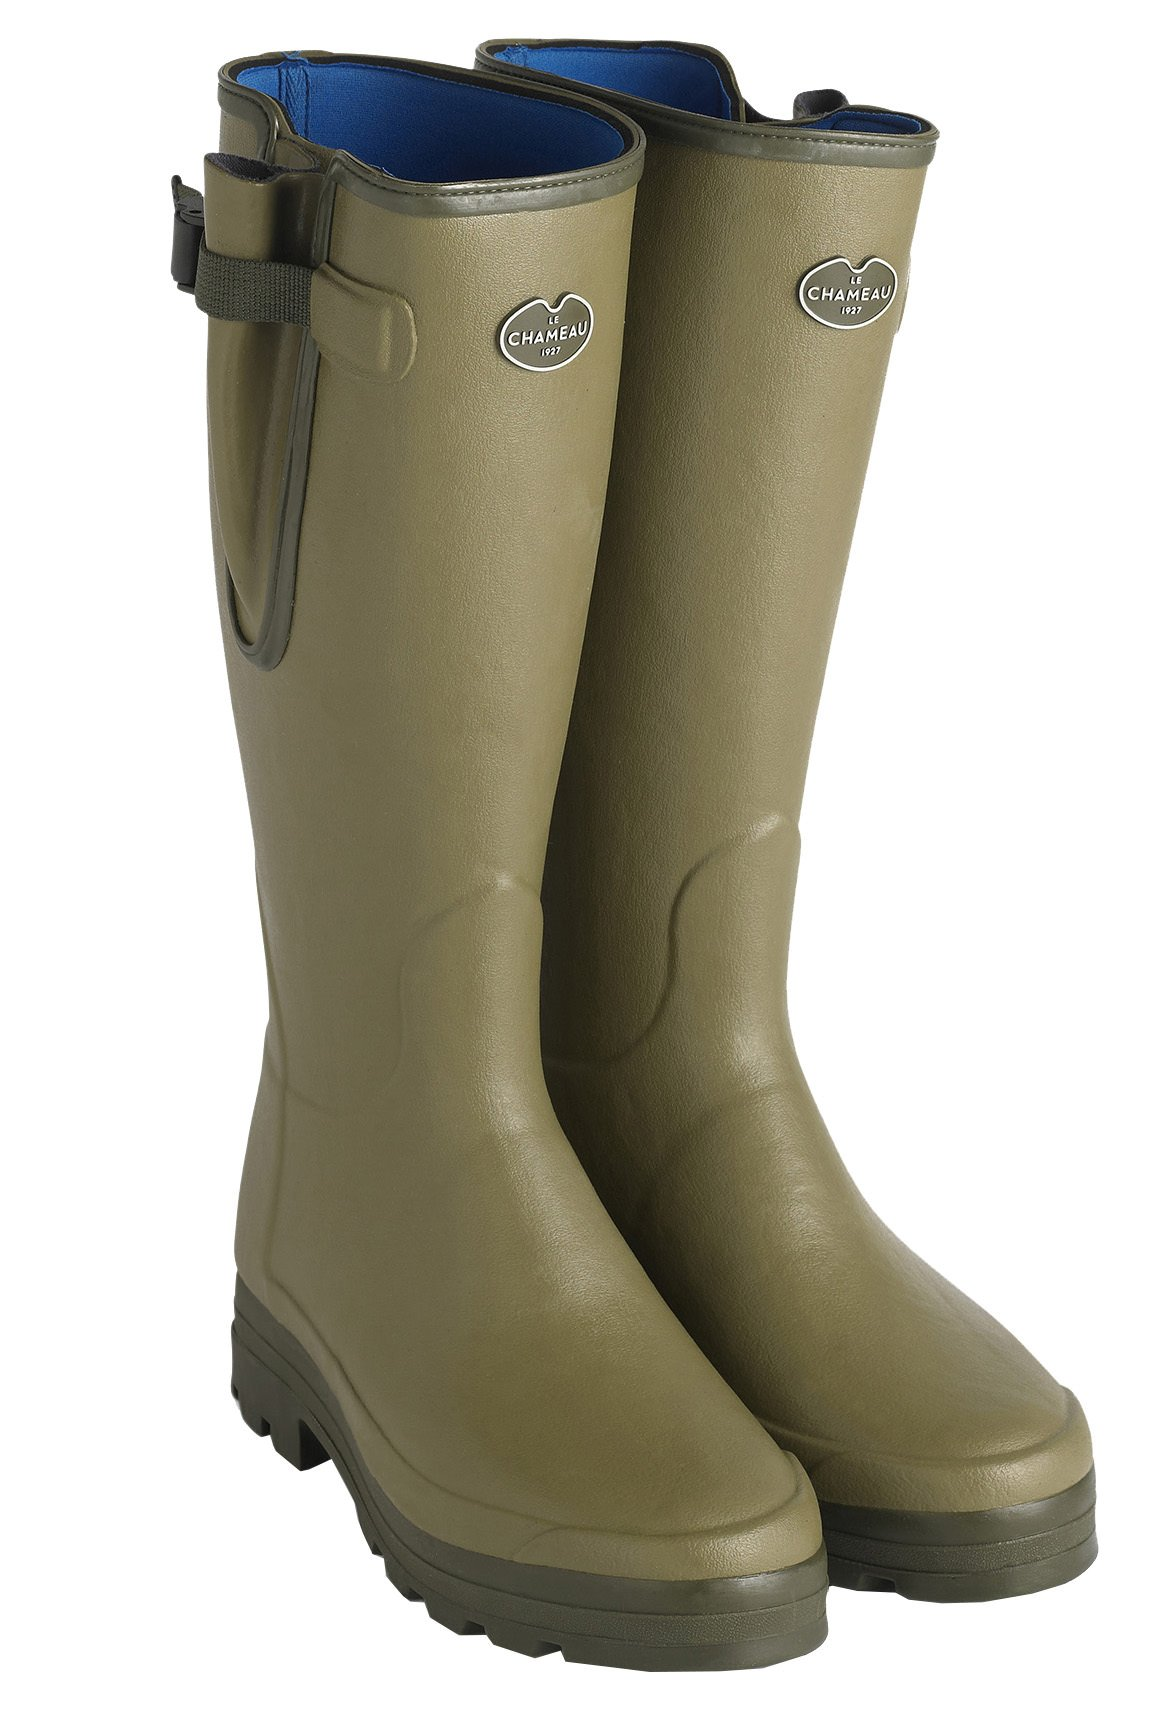 LE CHAMEAU 1927 Men's VIERZONORD Neoprene Lined Boot VIERZONORD - US 10